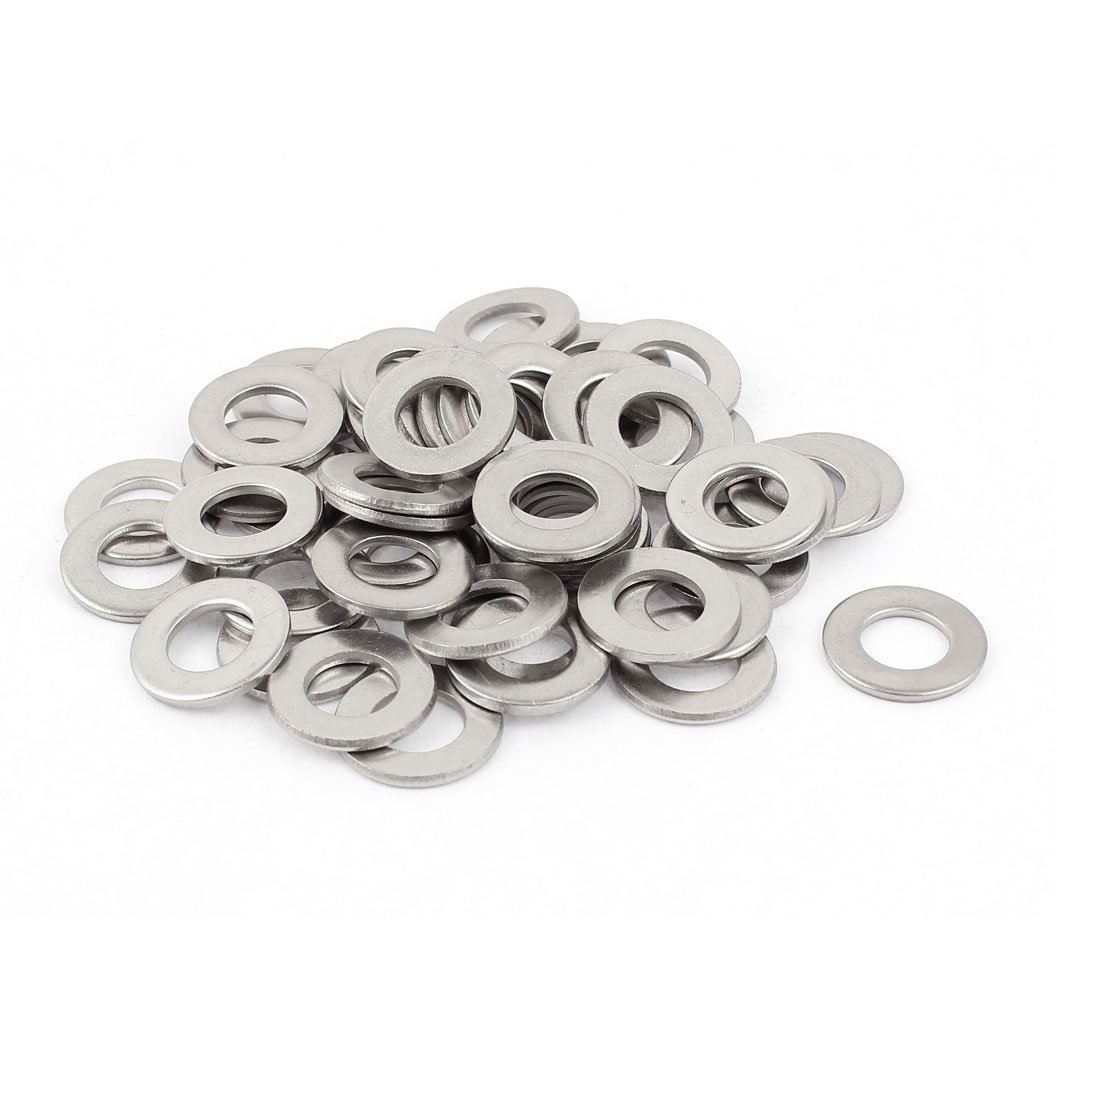 50Pcs M10 x 20mm x 2mm 304 Stainless Steel Flat Washer for Screw Bolt